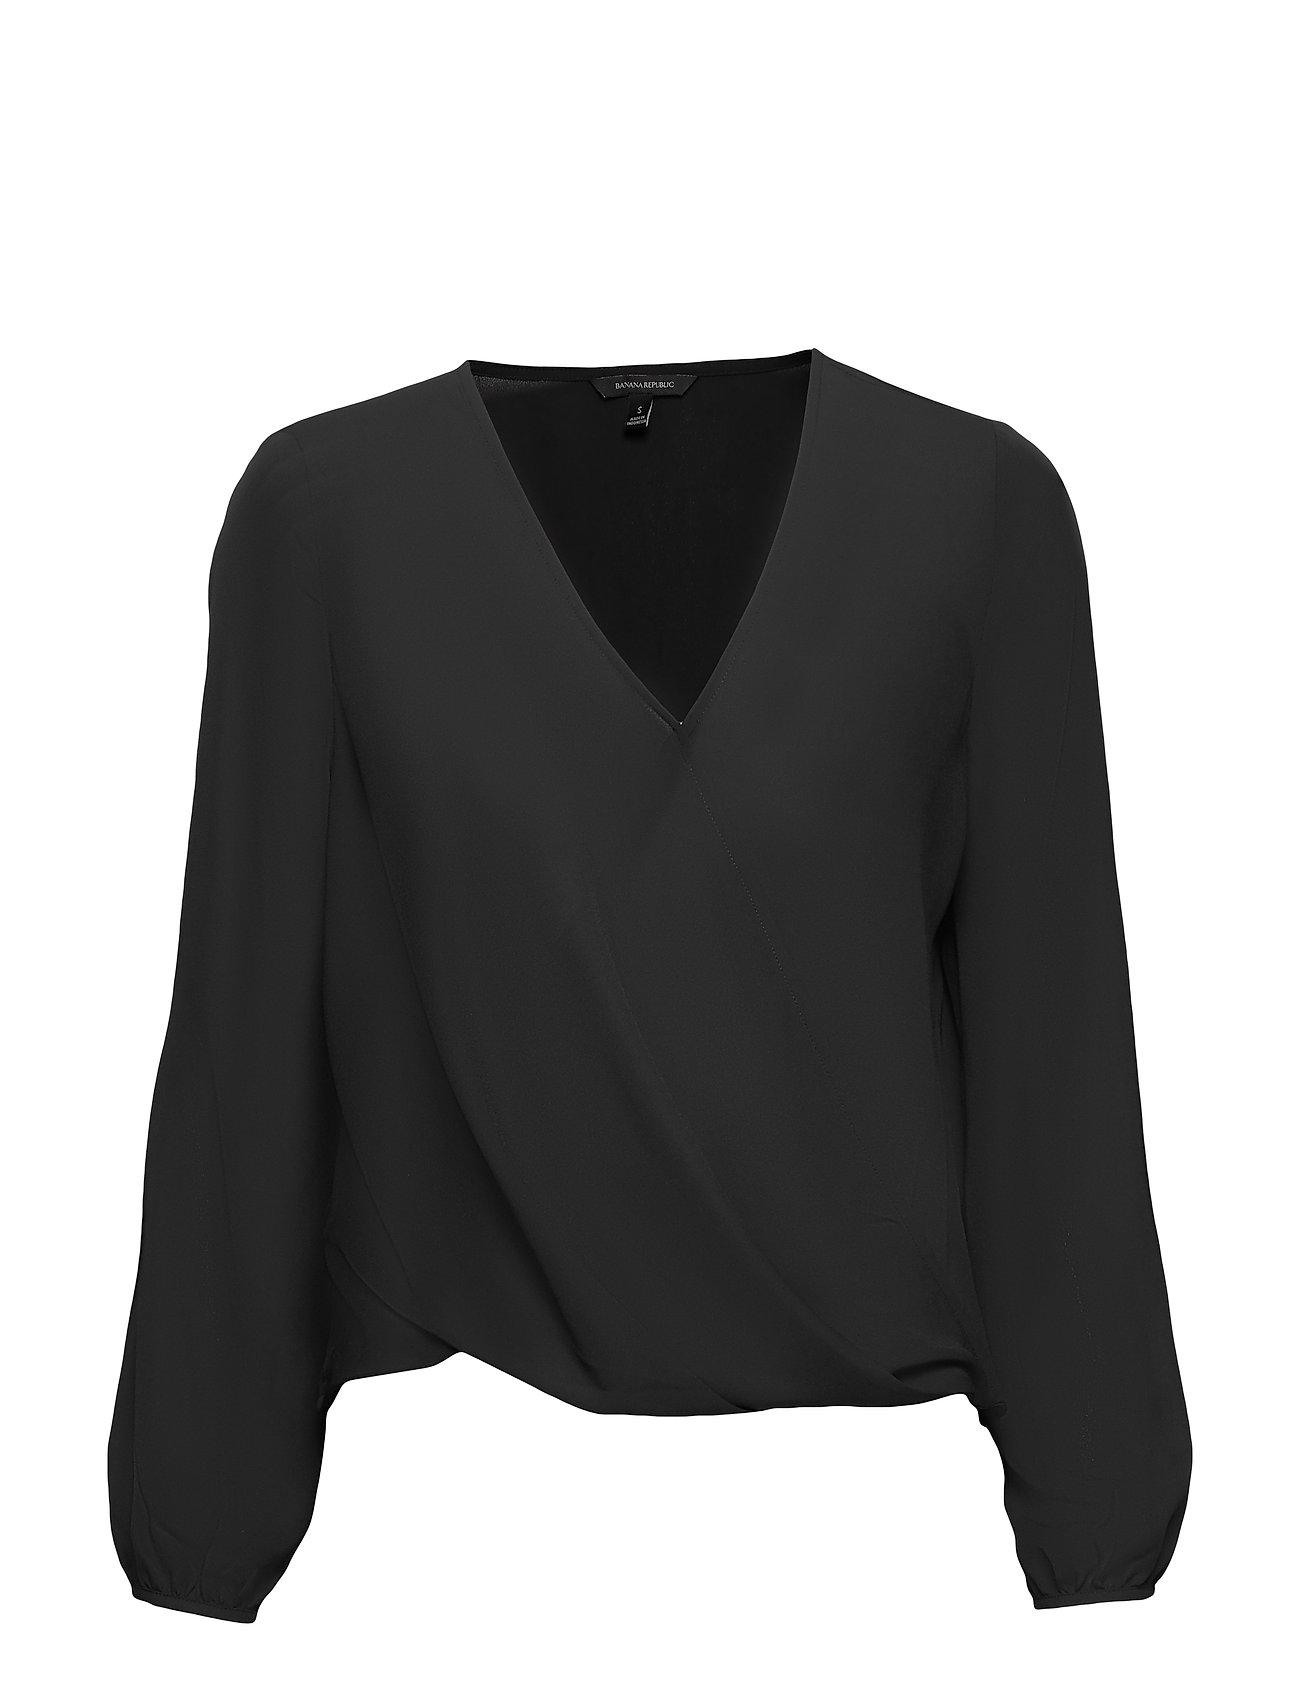 Banana Republic Wrap-Effect Top - BLACK